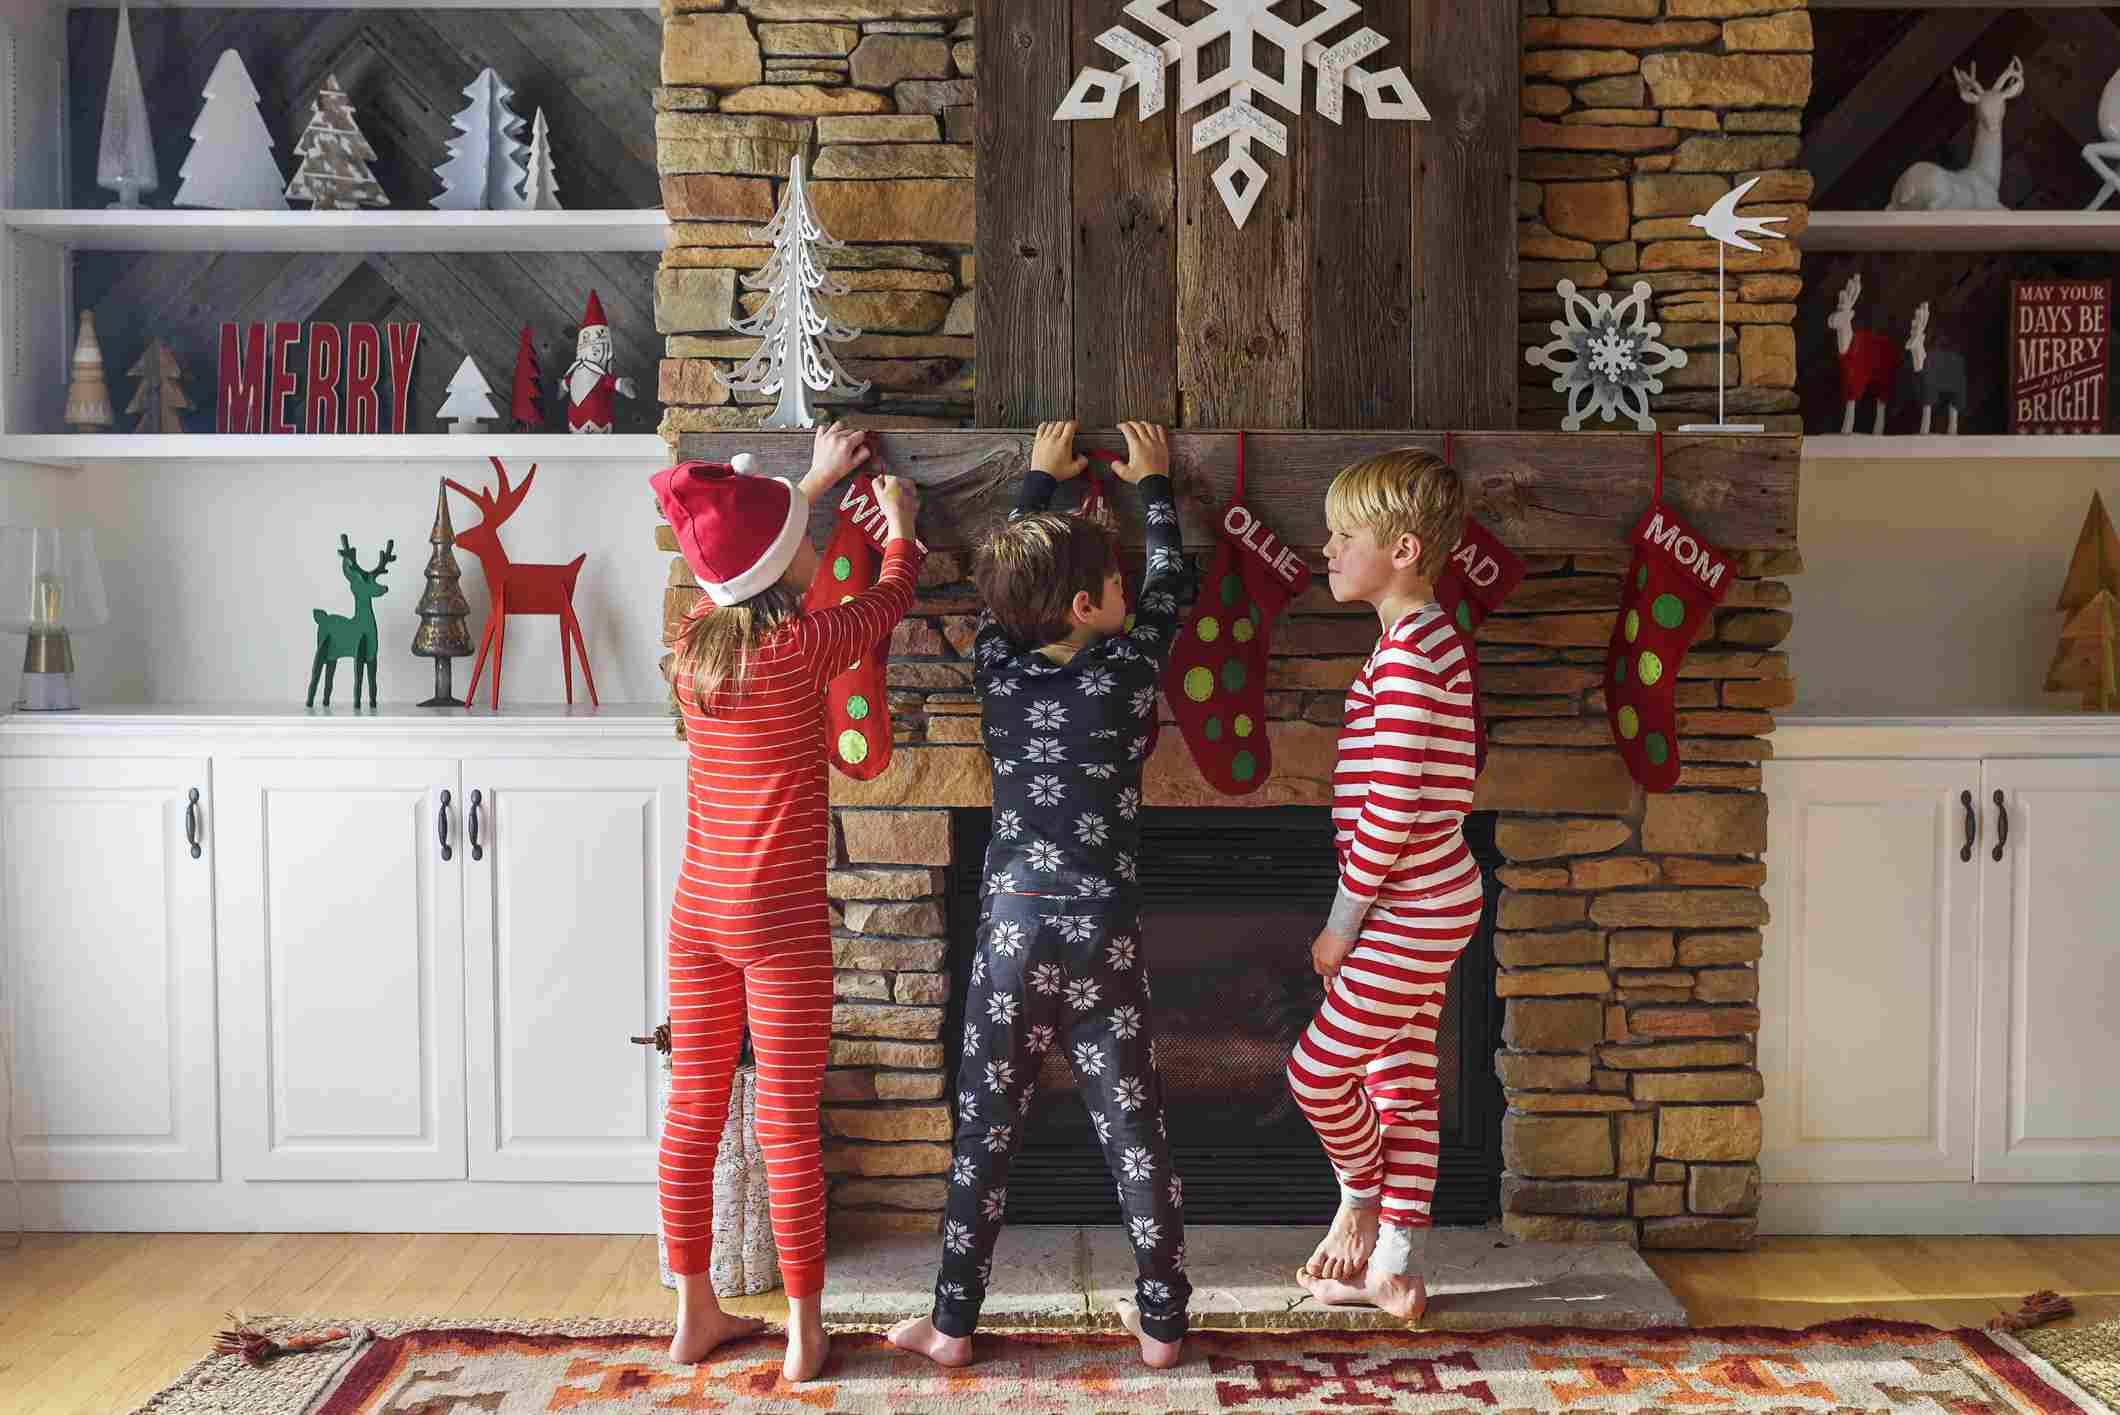 Three children hanging up Christmas stockings on a fireplace